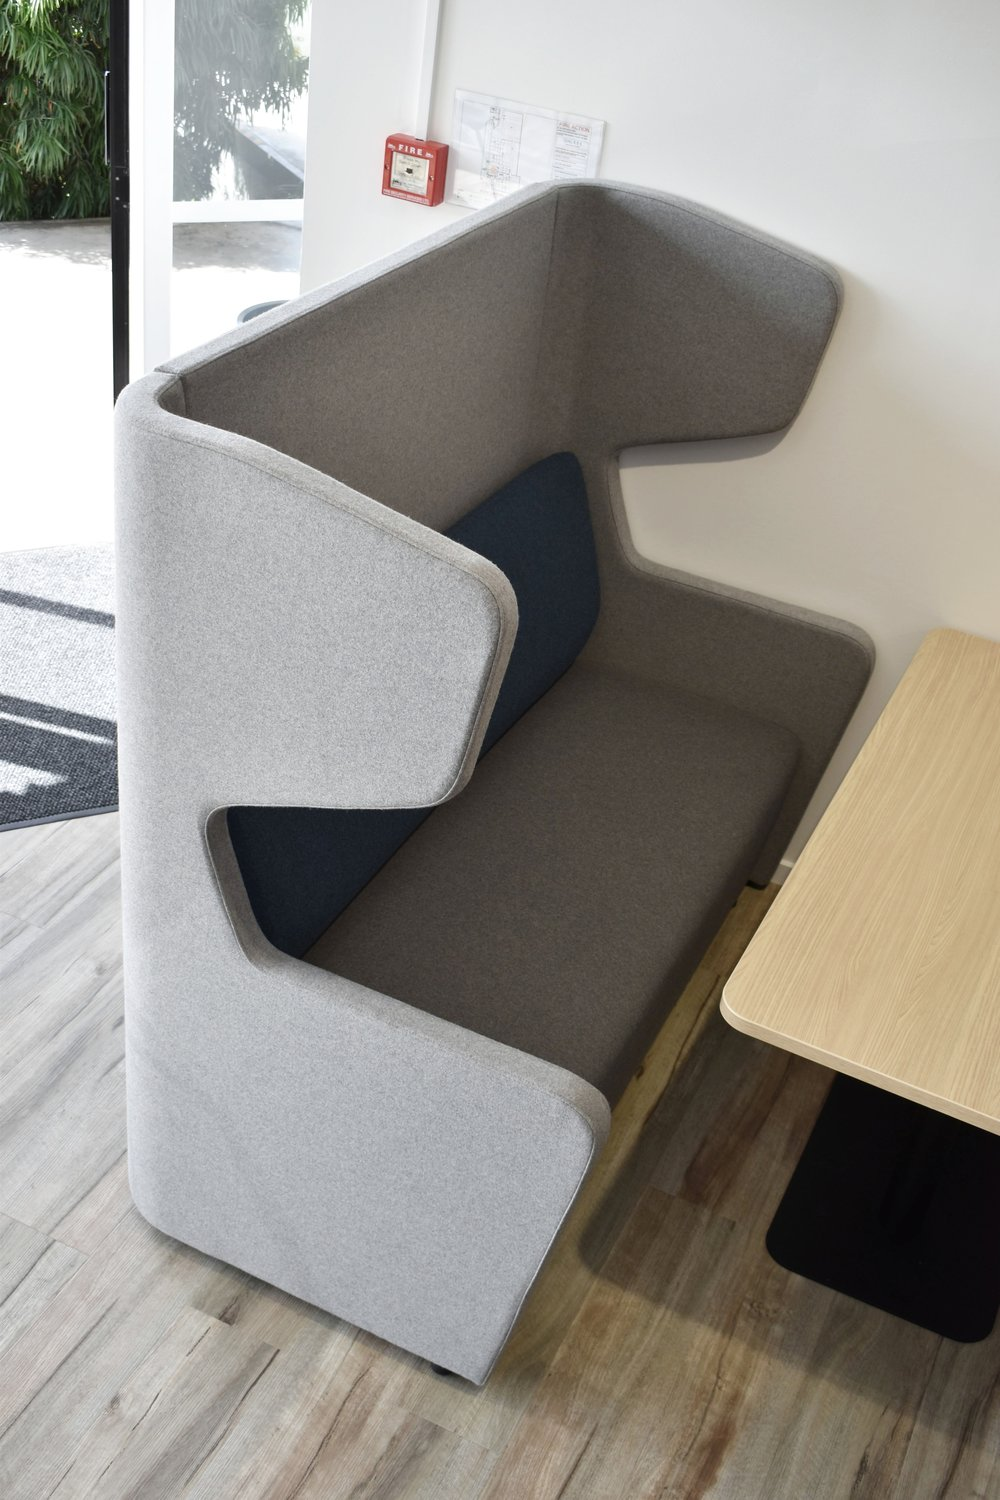 Hush Pods provide a fantastic spot for casual meetings and the high accoustic backs provide some privacy.